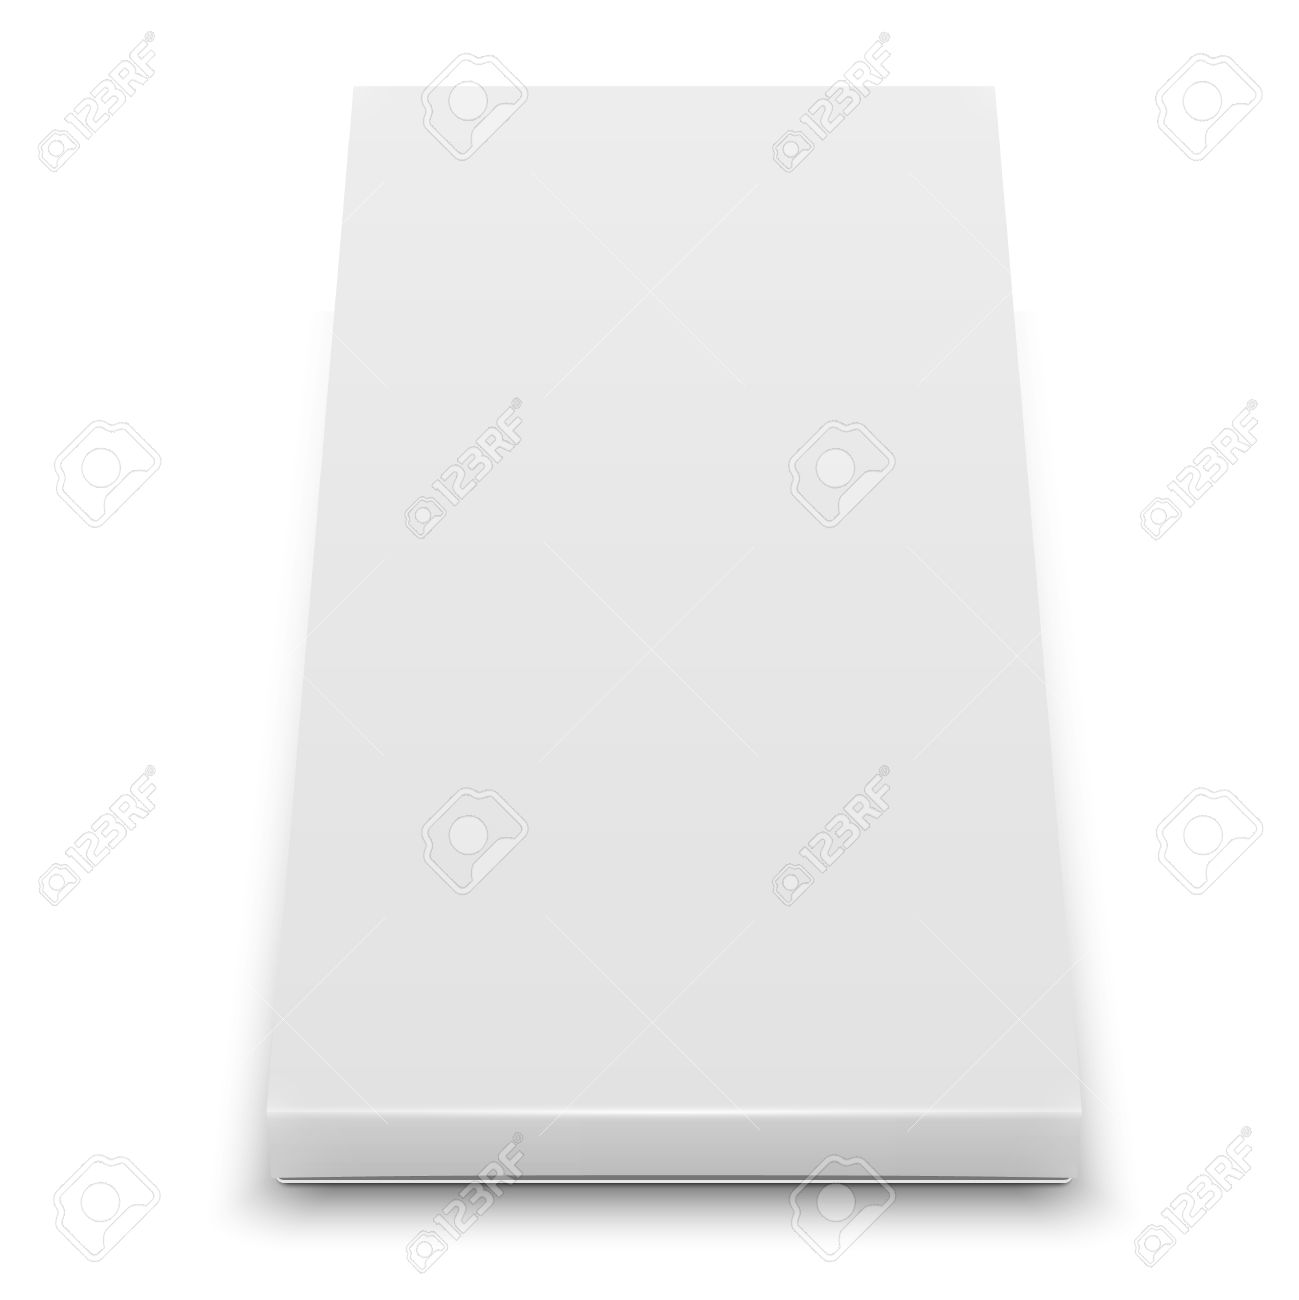 White Slim Cardboard Box Template For Chocolate, Crayons, Pencils ...